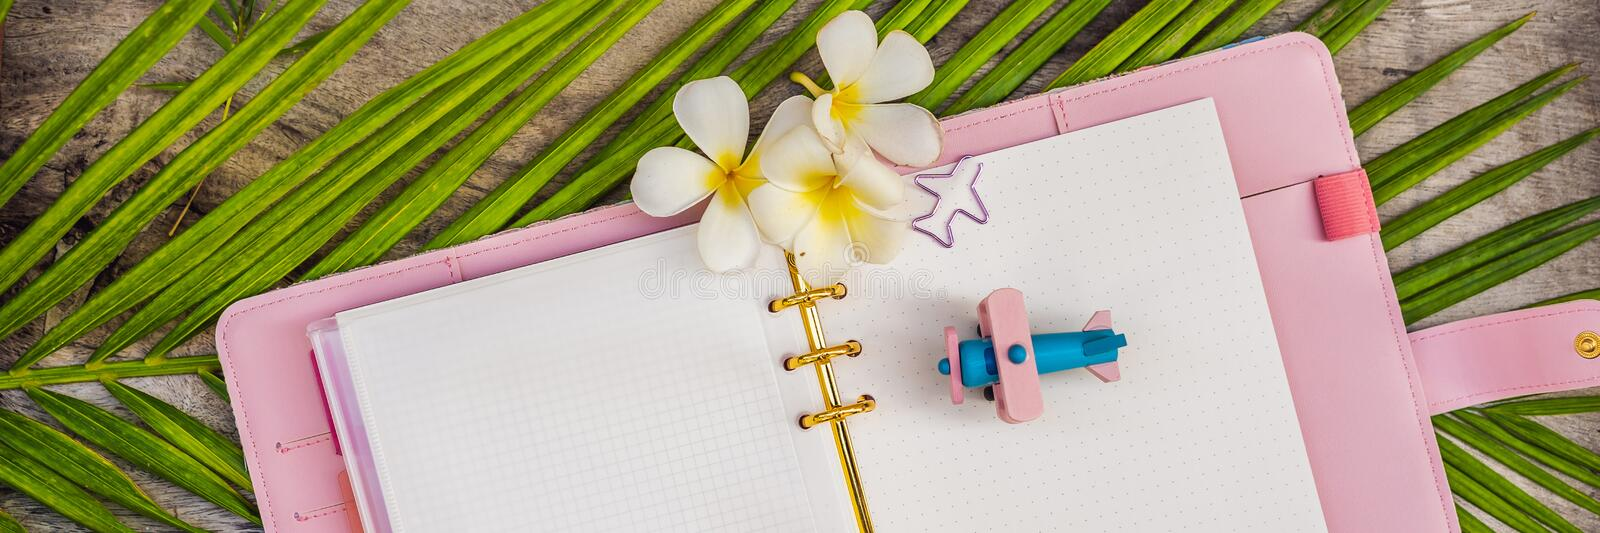 Notepad and stationery on wooden background. Planner for business and study. Fans of stationery. Travel planning. Notebook. Travel concept. BANNER, LONG FORMAT stock photos